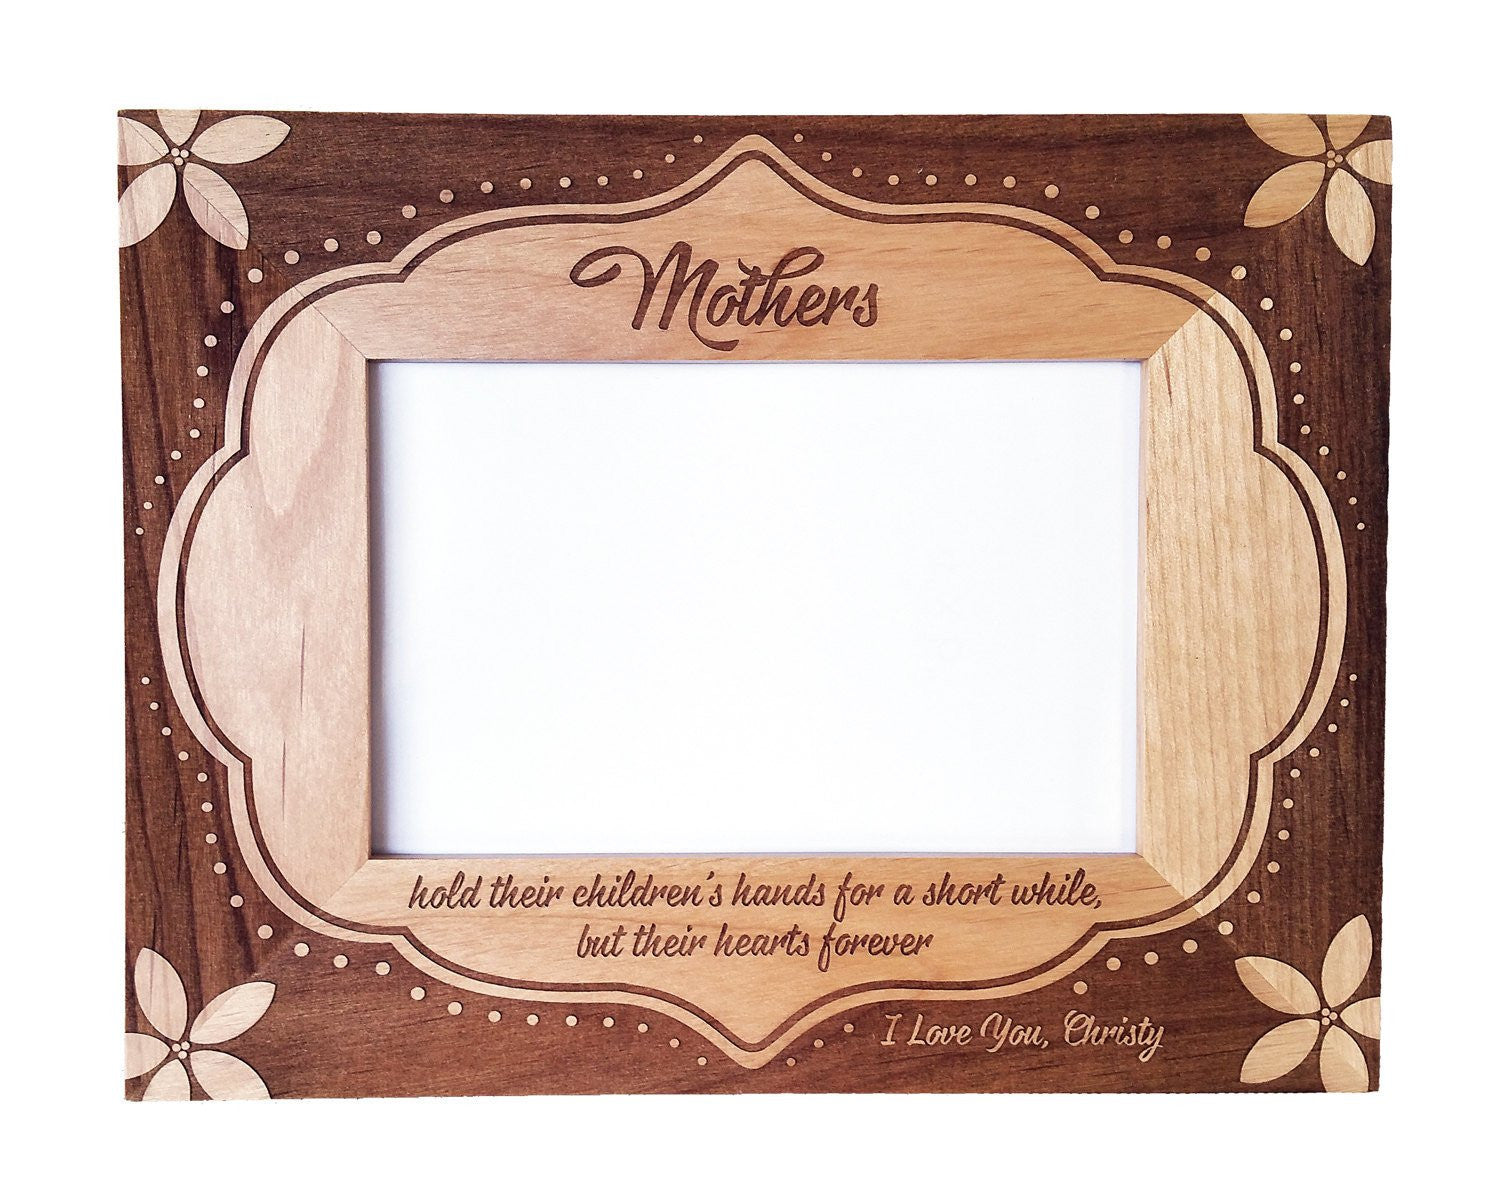 Mothers, Mom, Mothers Day Frame - Personalized